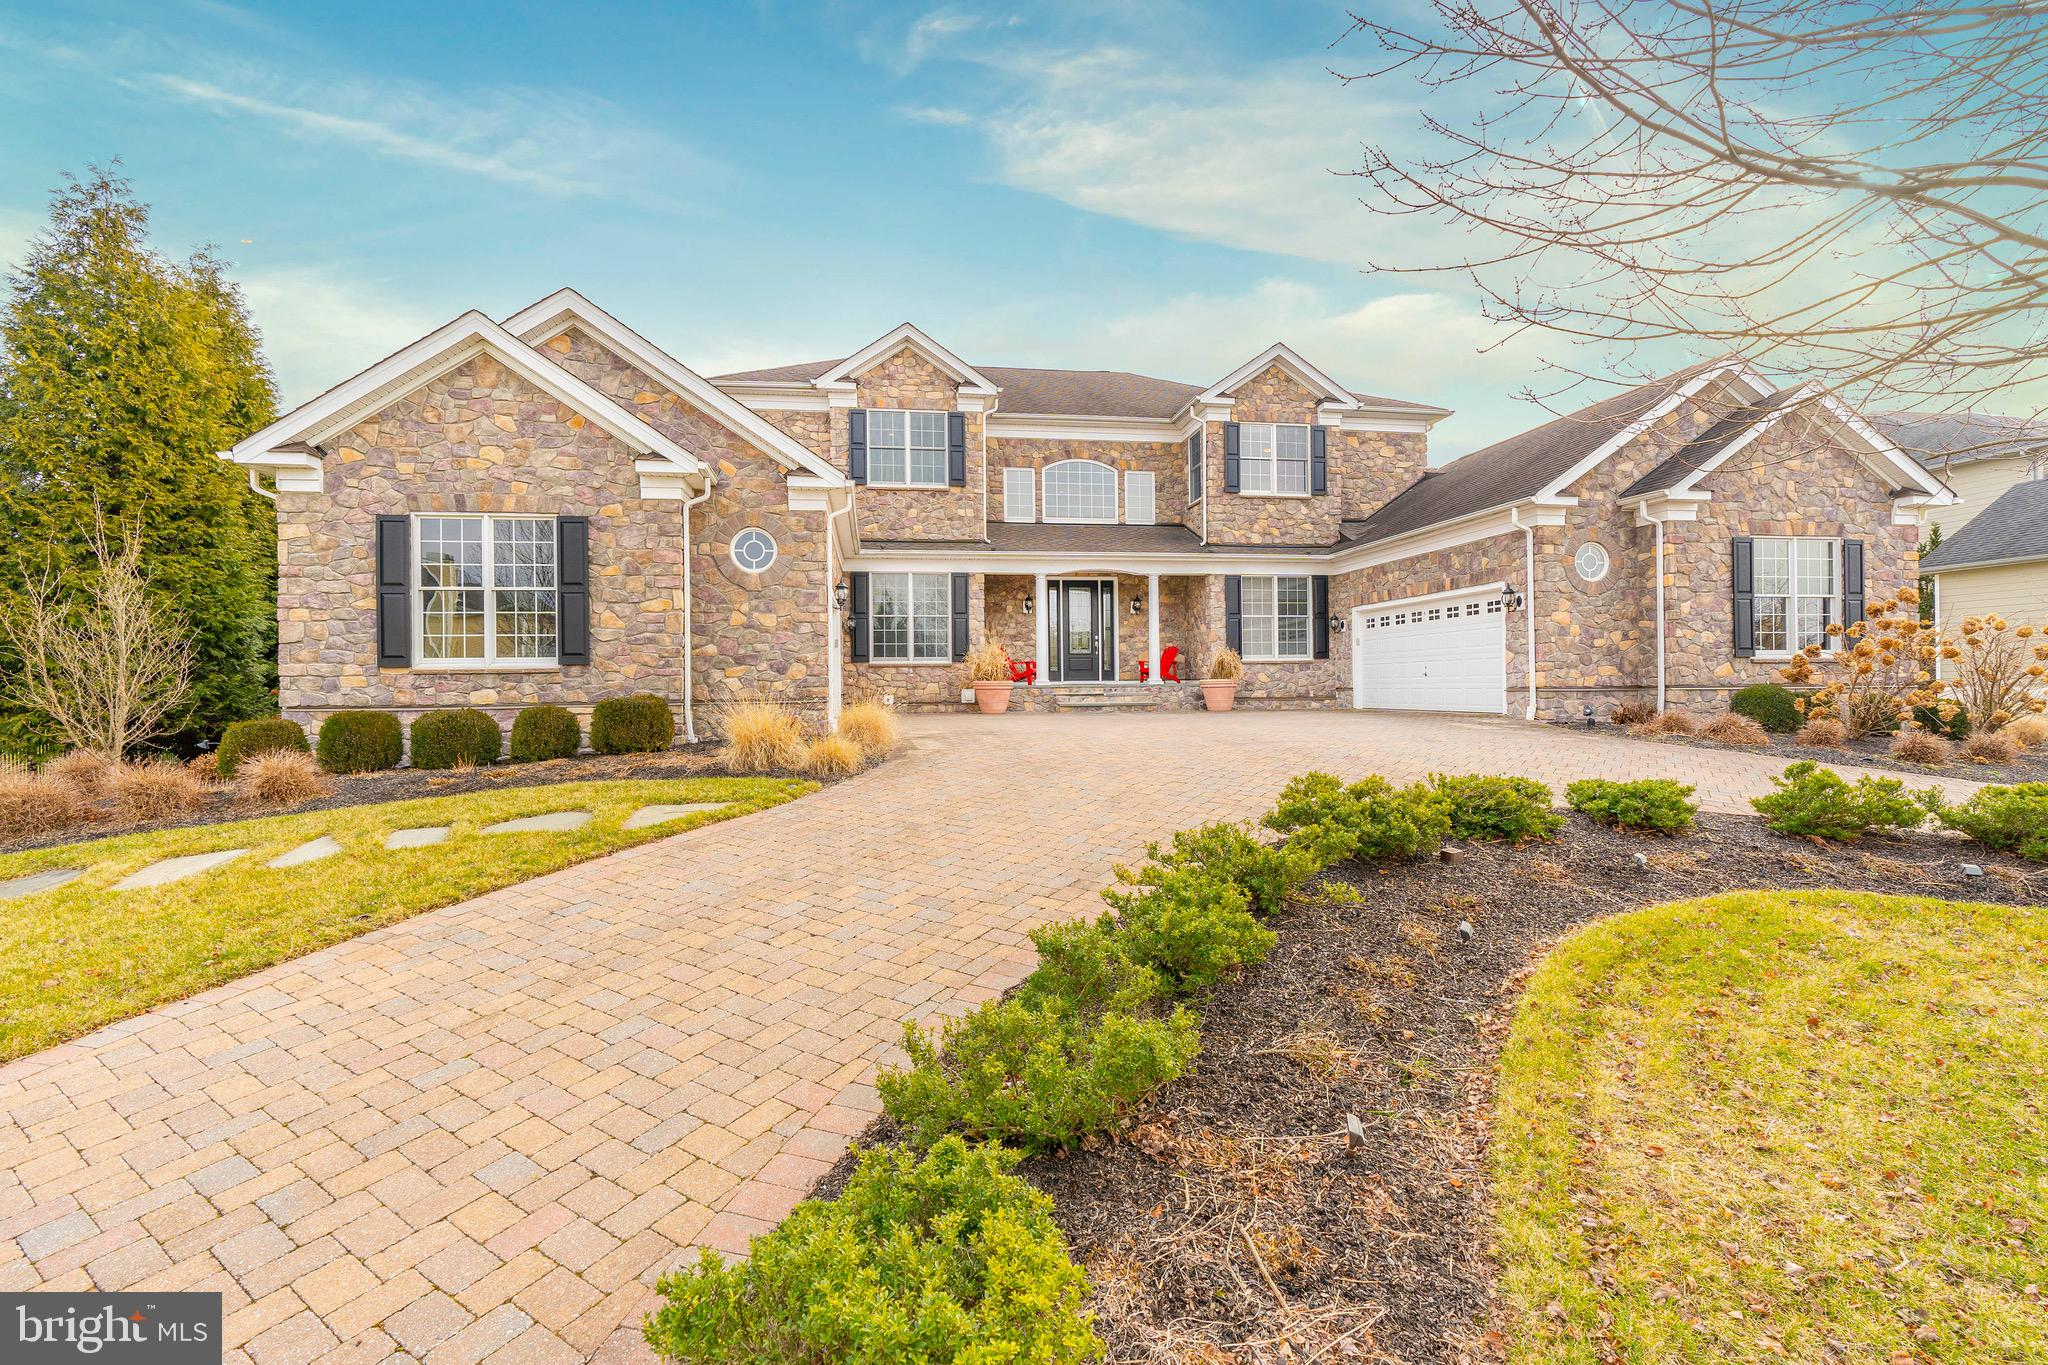 Located in Brandywine Hunt, this luxury Toll Brothers Malvern model is a blank canvas ready for you